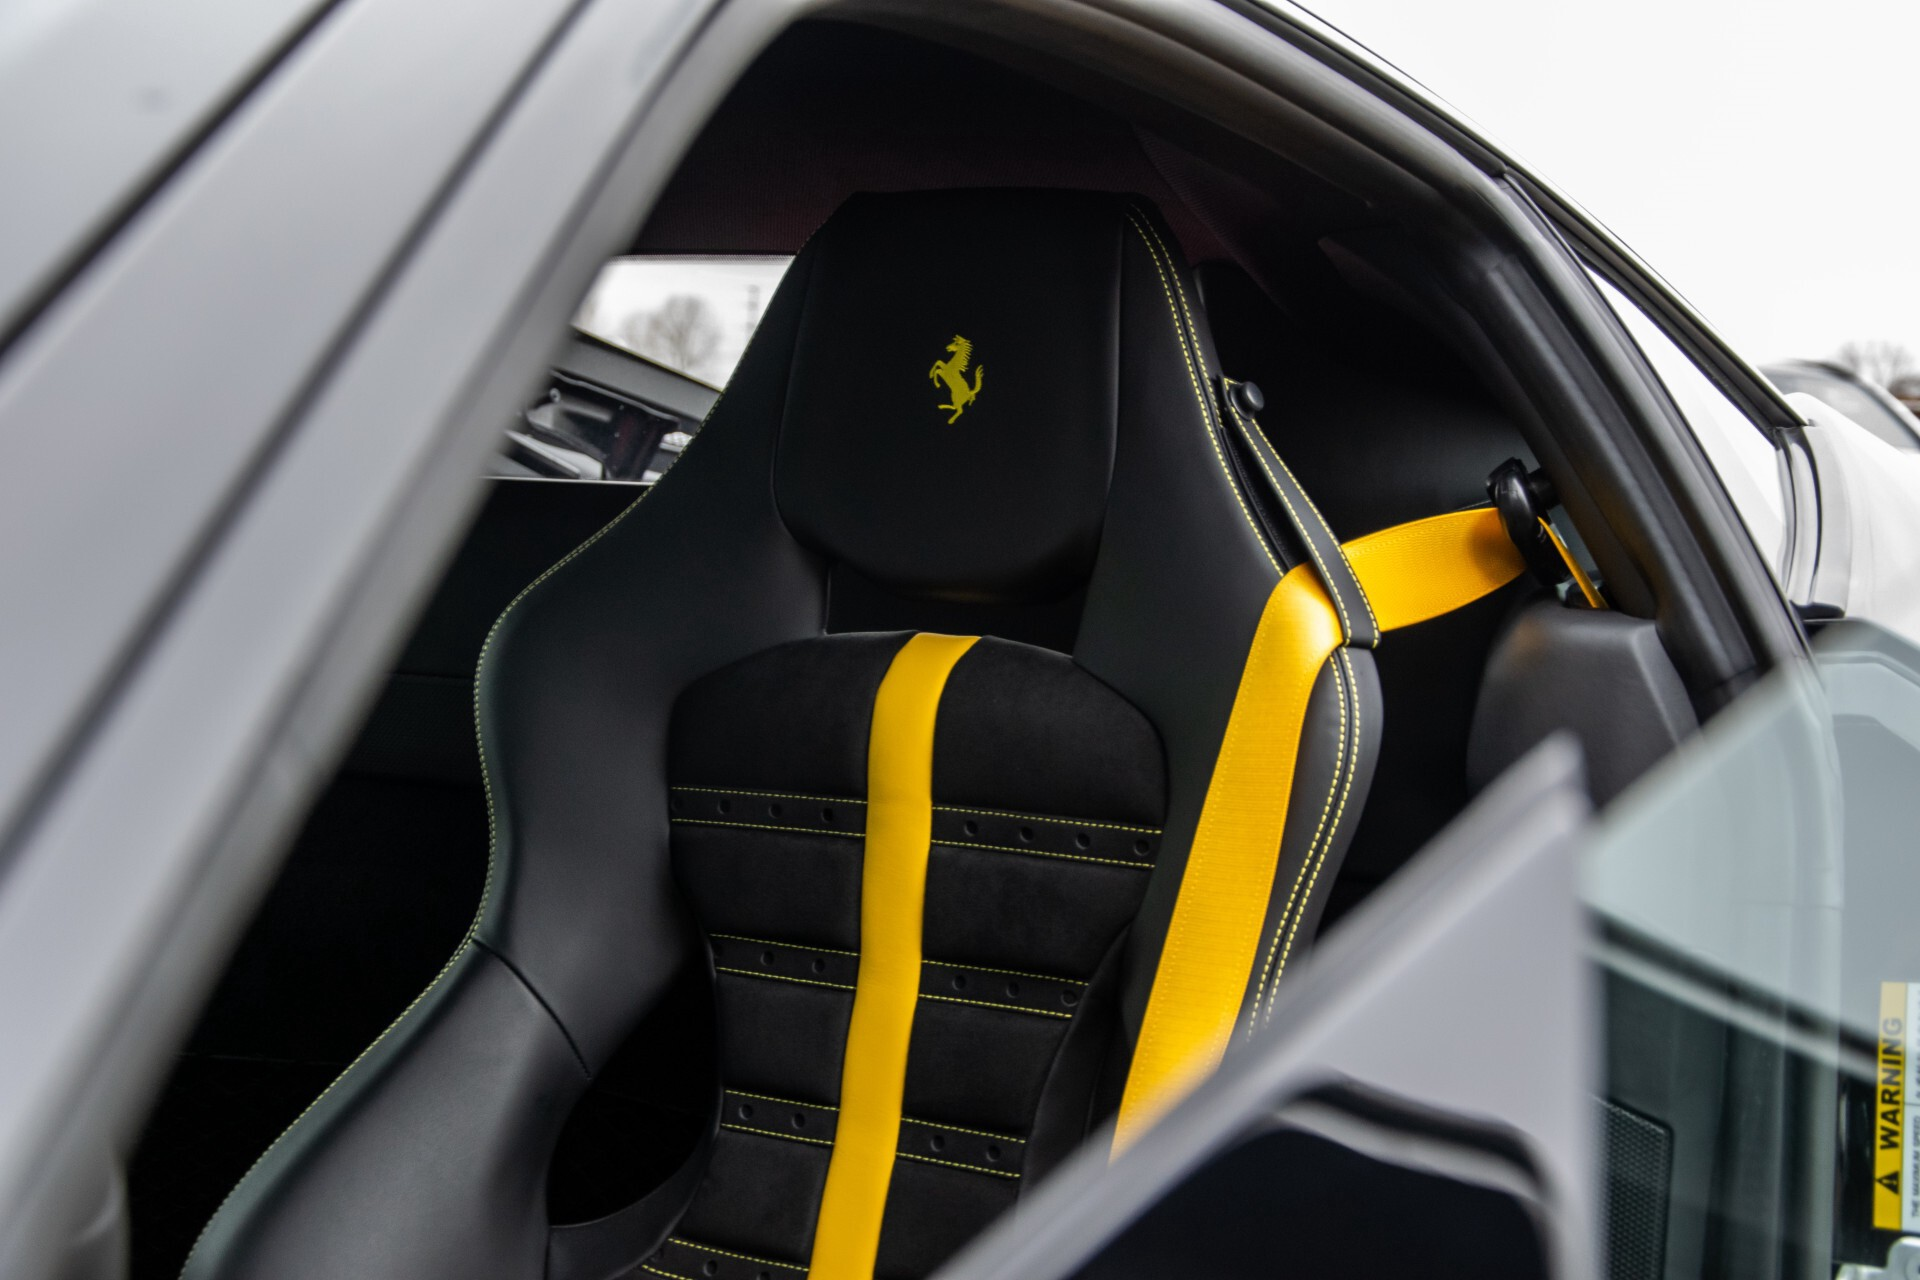 Ferrari F8 Tributo 3.9 V8 HELE Novitech Full Carbon/Lift/Racing Seats/Passenger Display/Hifi Foto 12